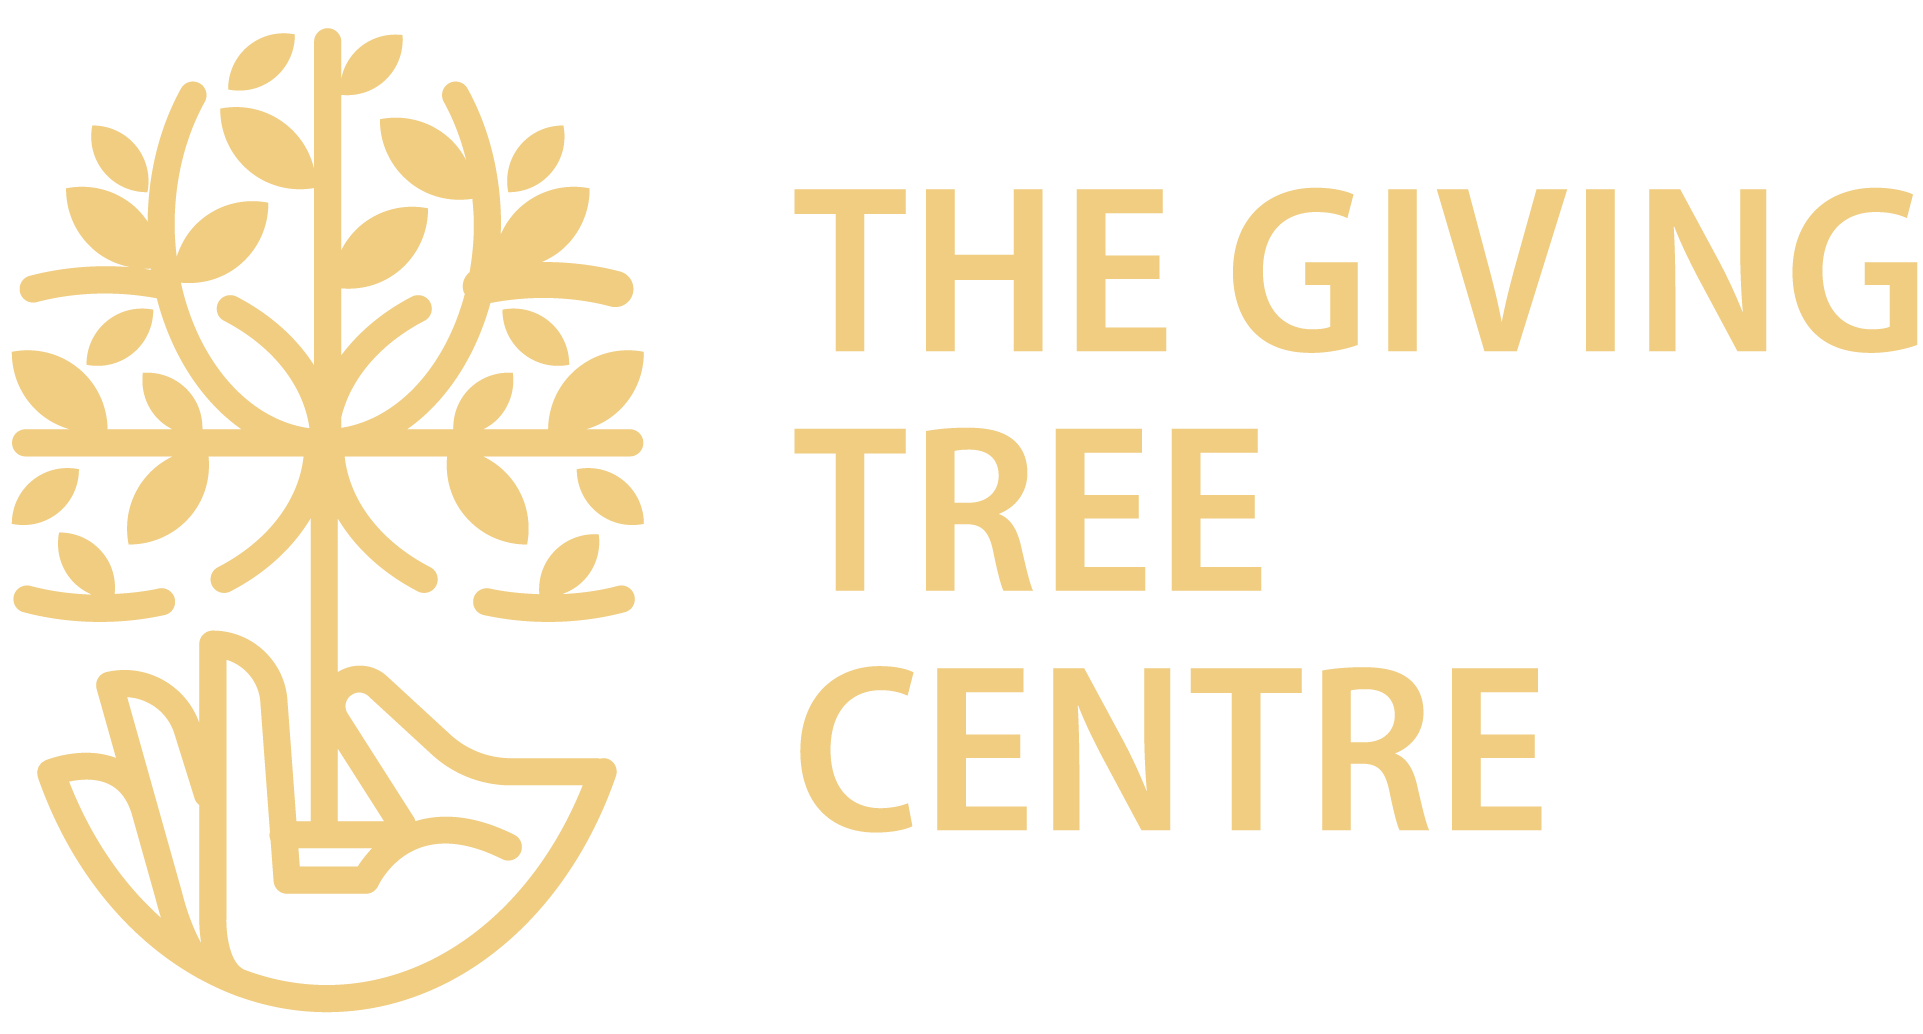 The Giving Tree Centre Logo